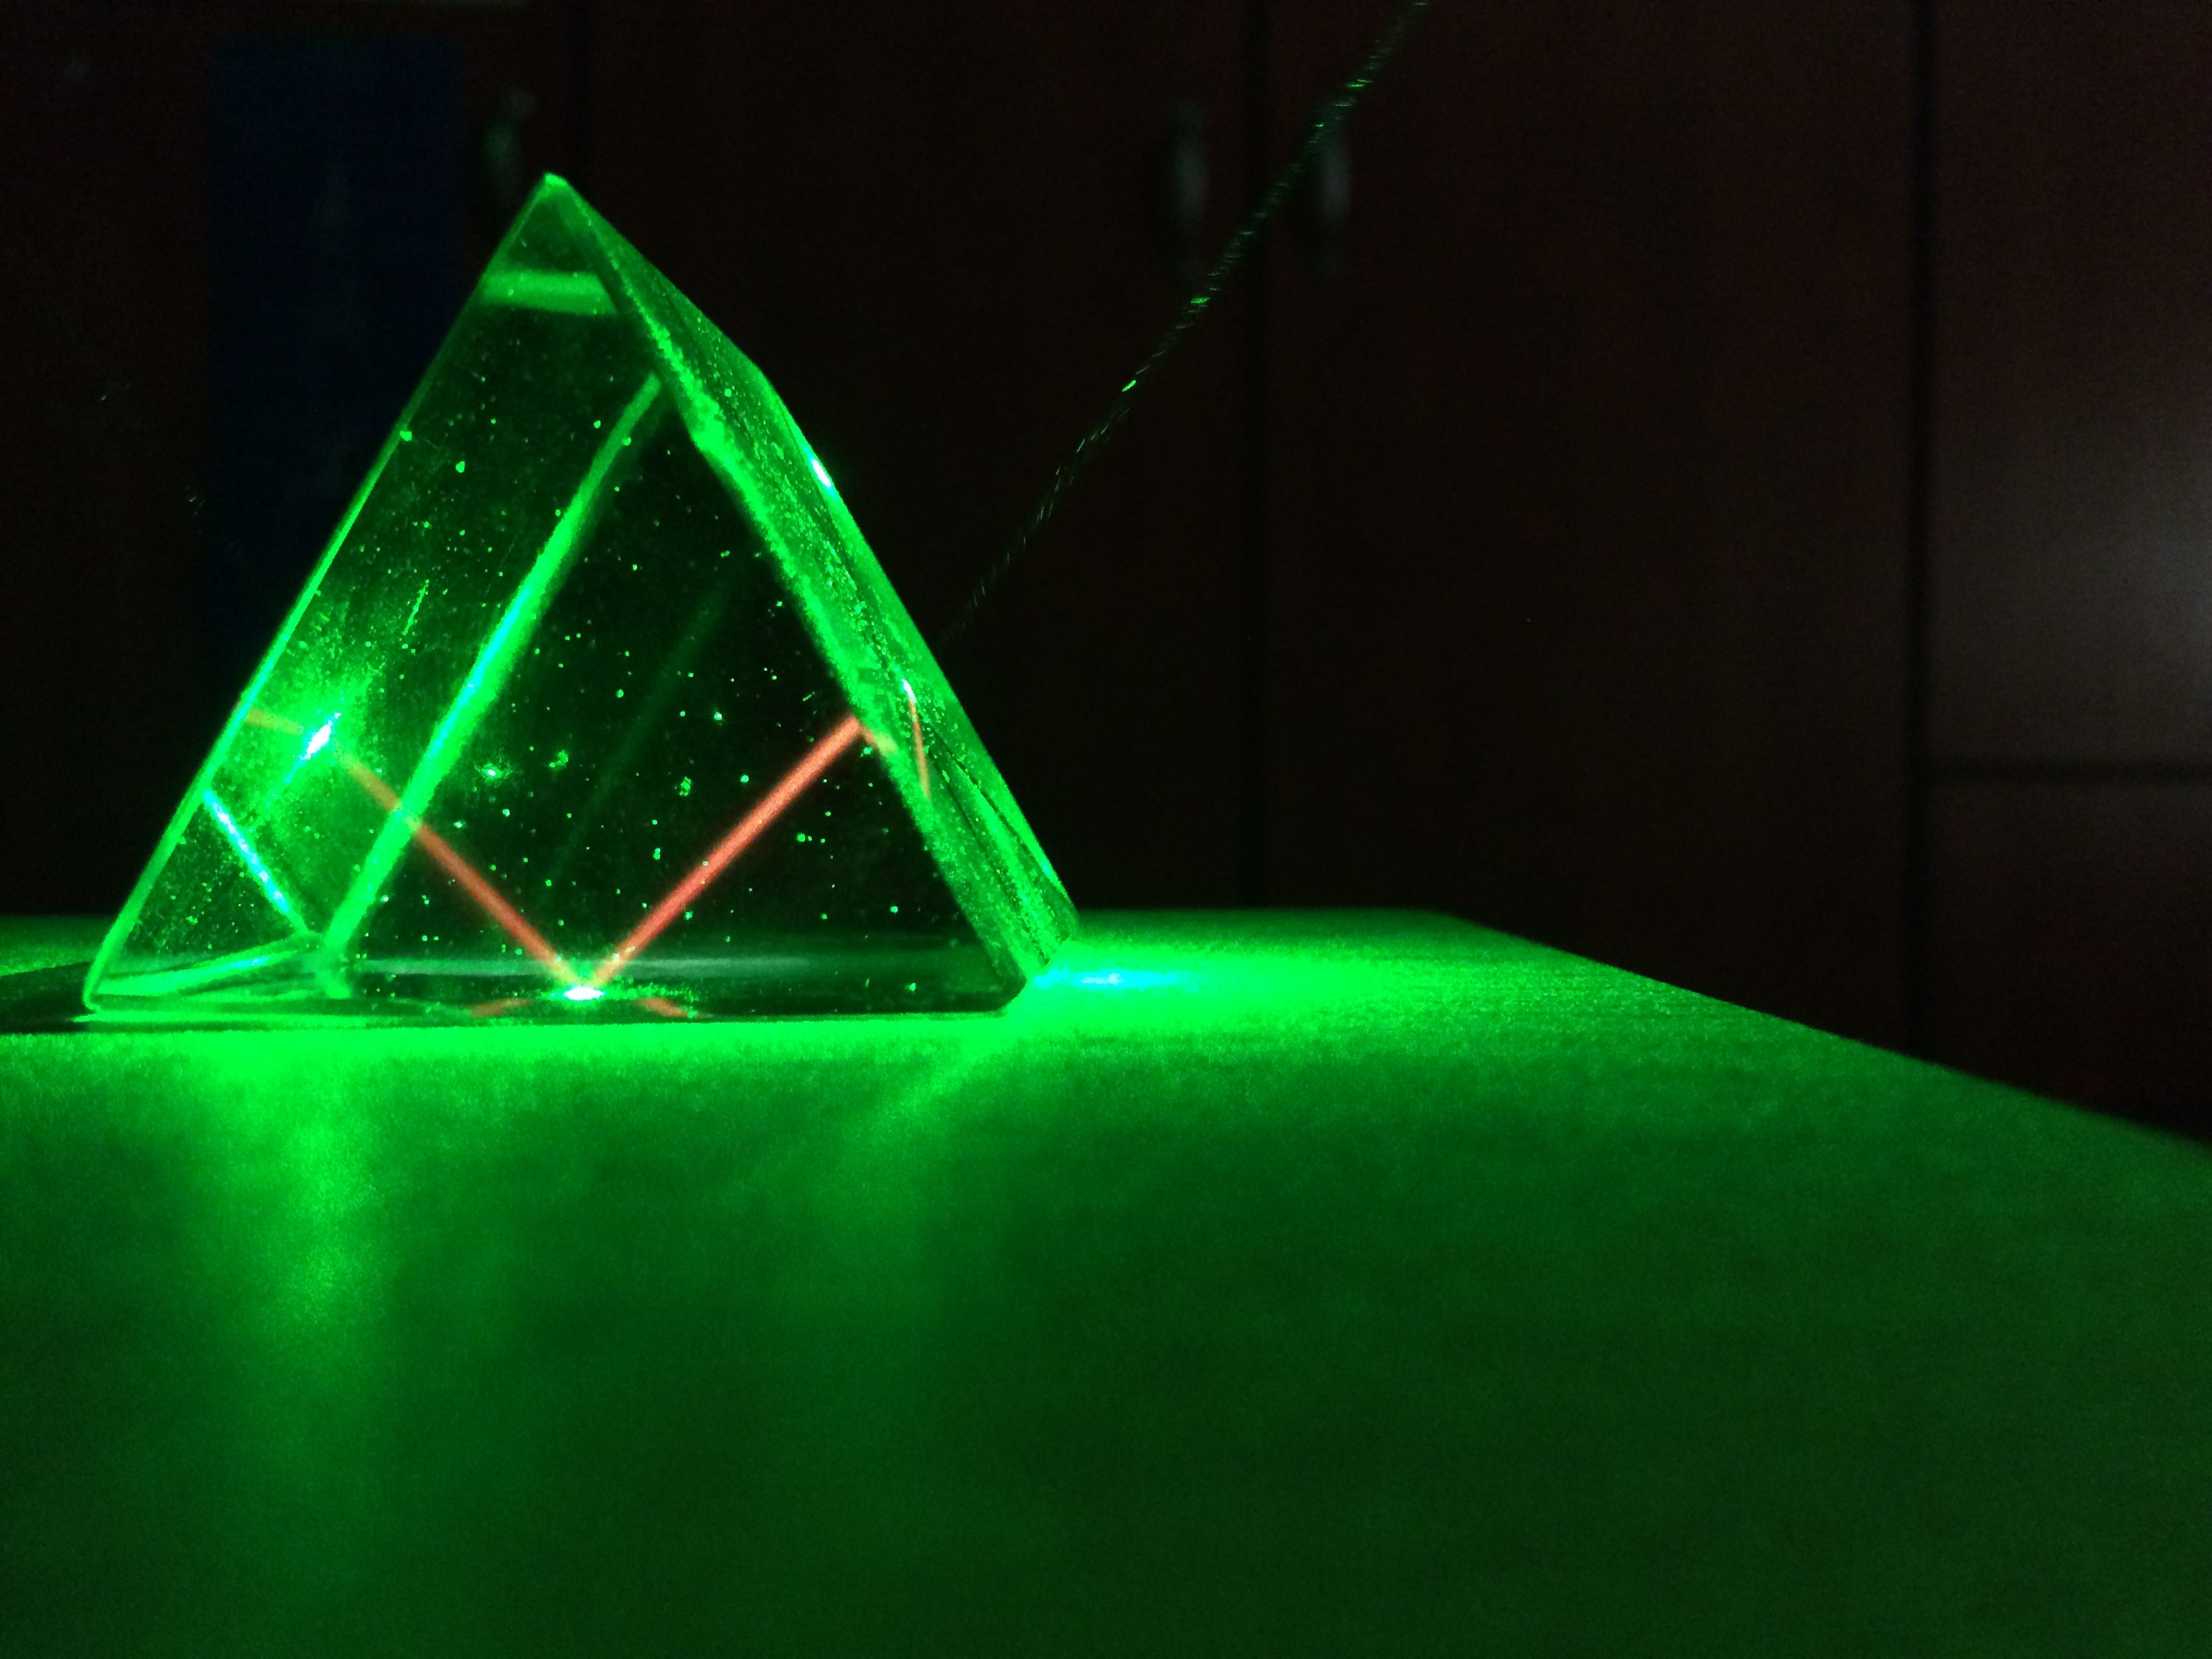 refraction and prism Refraction is responsible for dispersion in rainbows and many other situations  ( a) a pure wavelength of light falls onto a prism and is refracted at both surfaces.